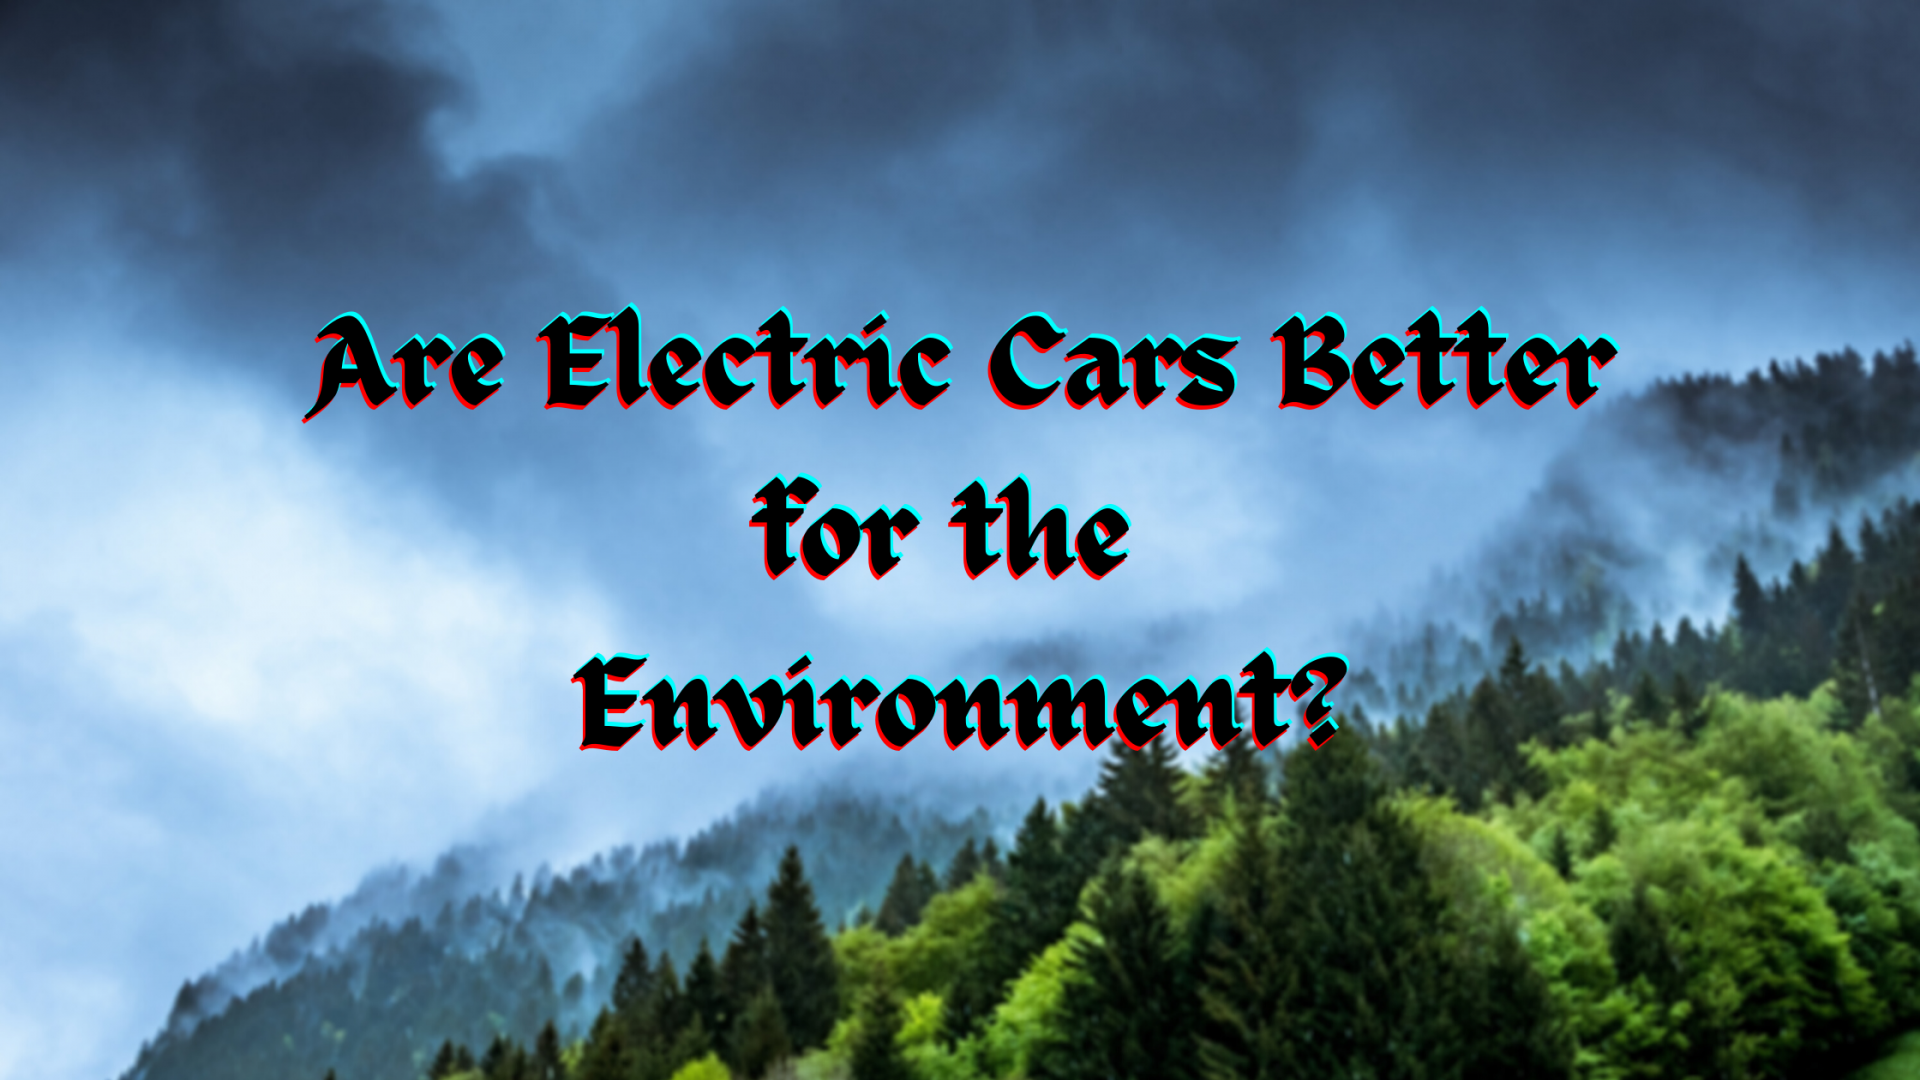 Are Electric Cars Better for the Environment